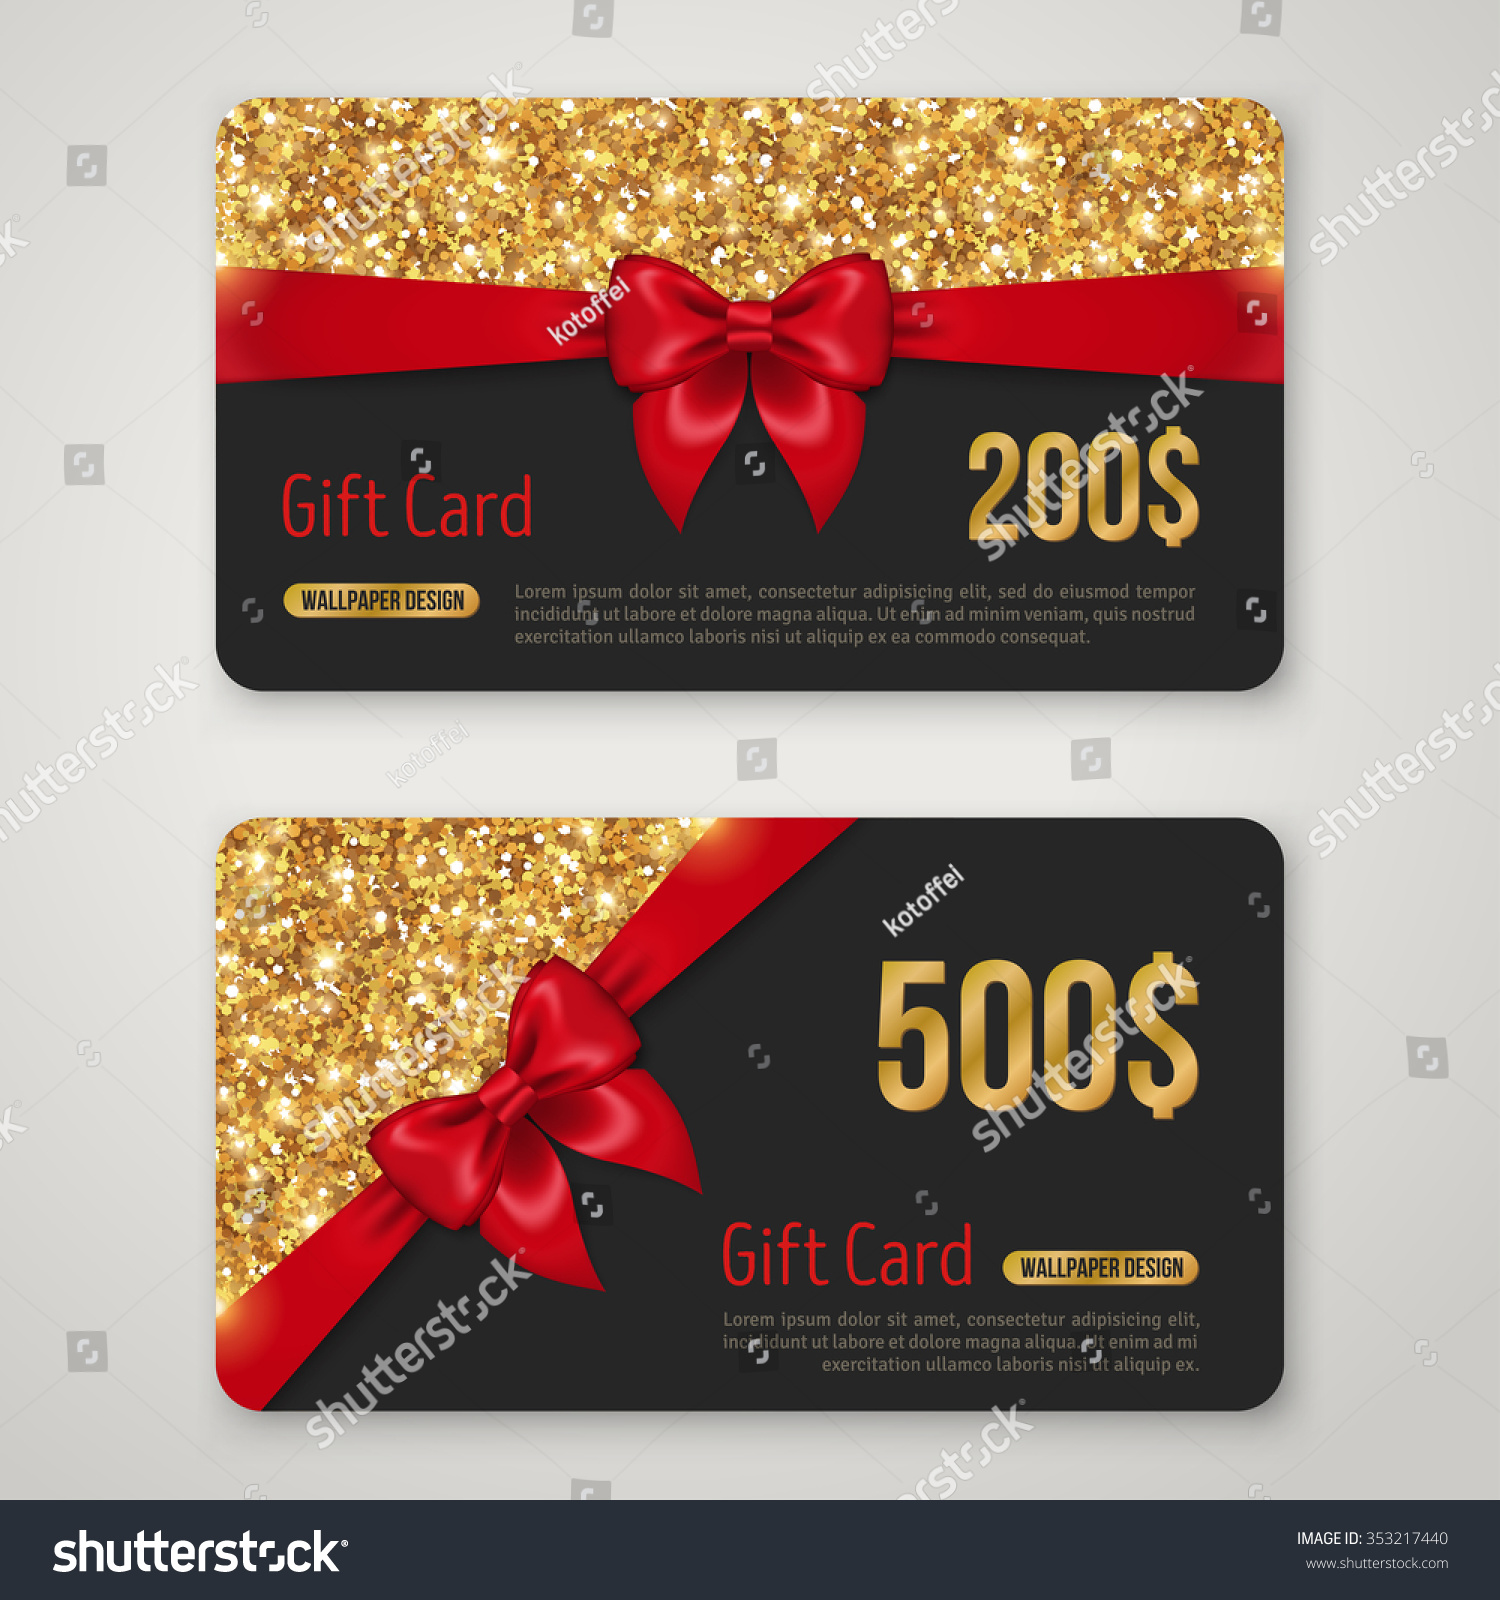 ... Template, Voucher Design, Holiday Invitation. Glowing New Year or